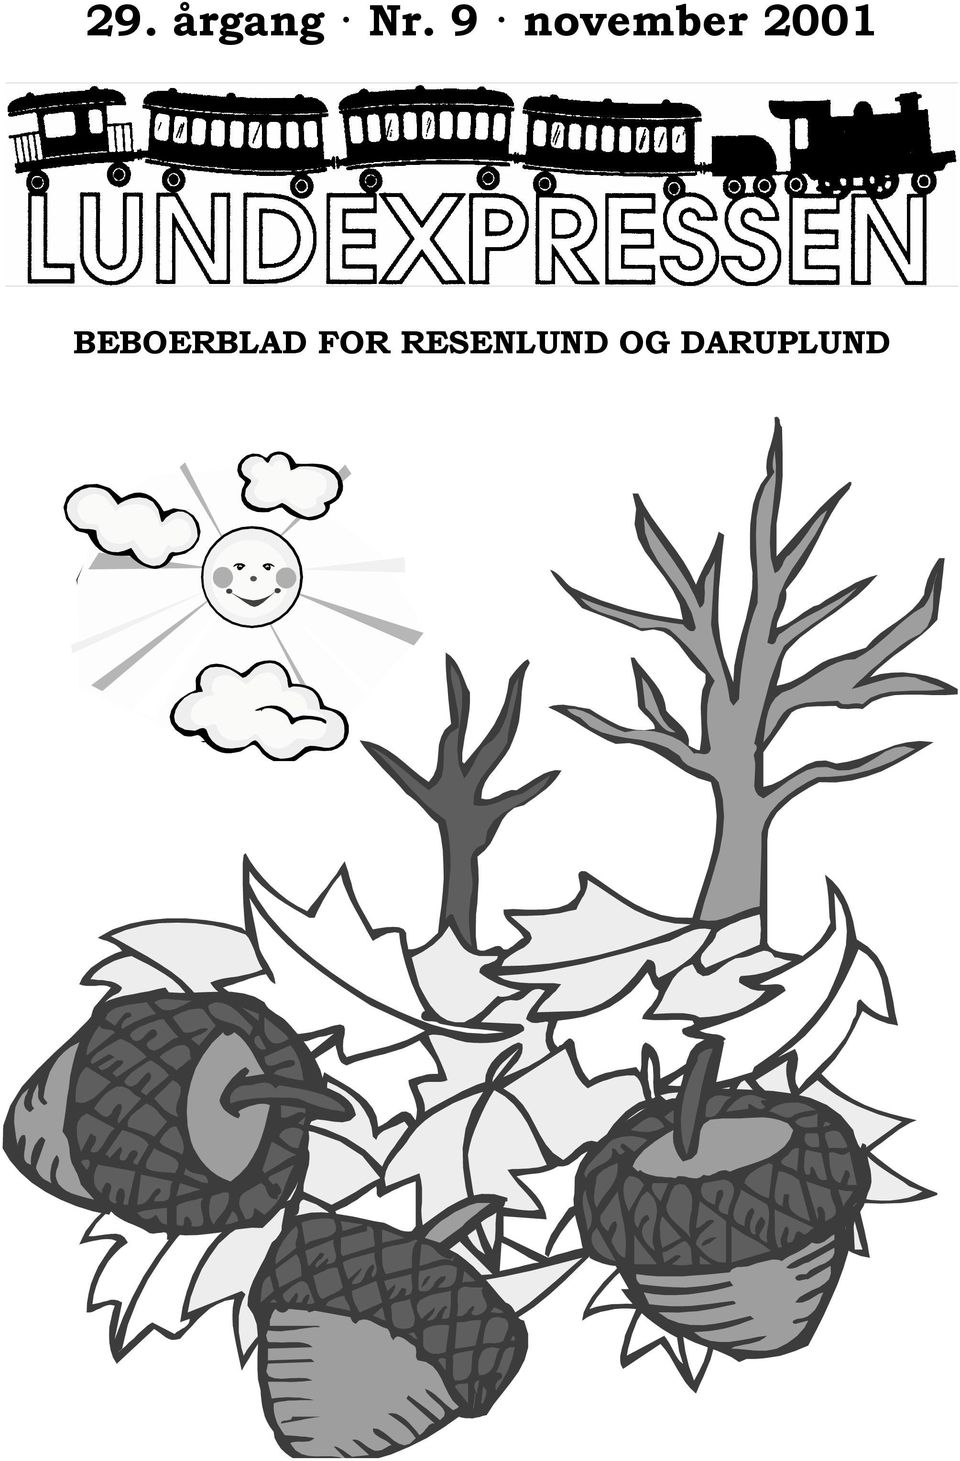 BEBOERBLAD FOR